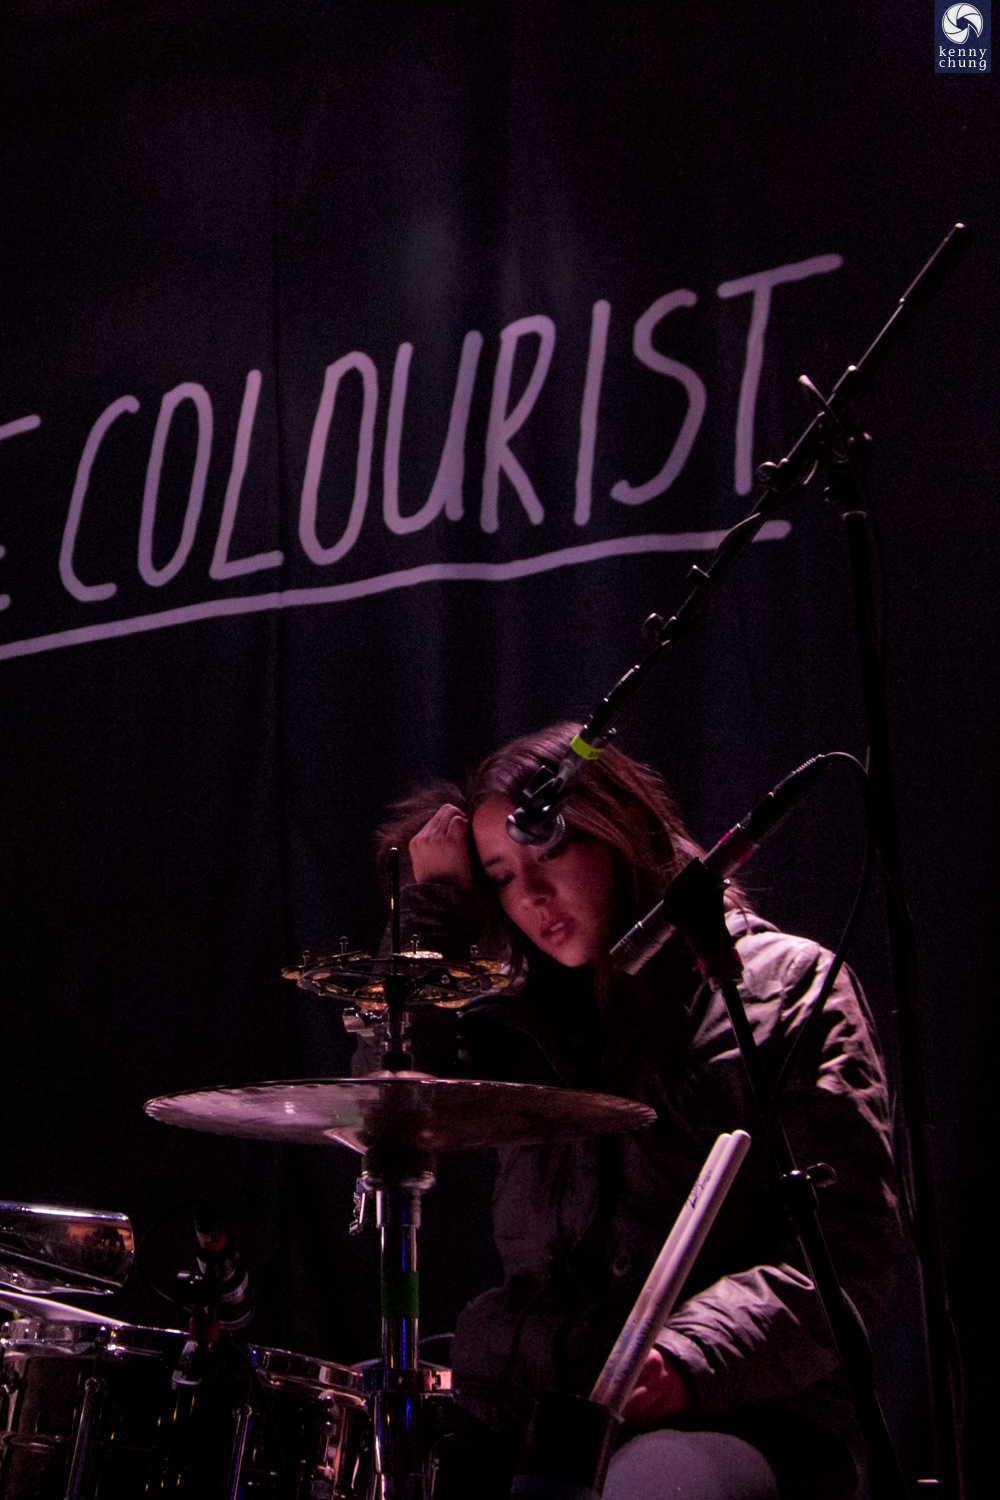 Maya Tuttle of The Colourist during soundcheck at Rough Trade, Brooklyn